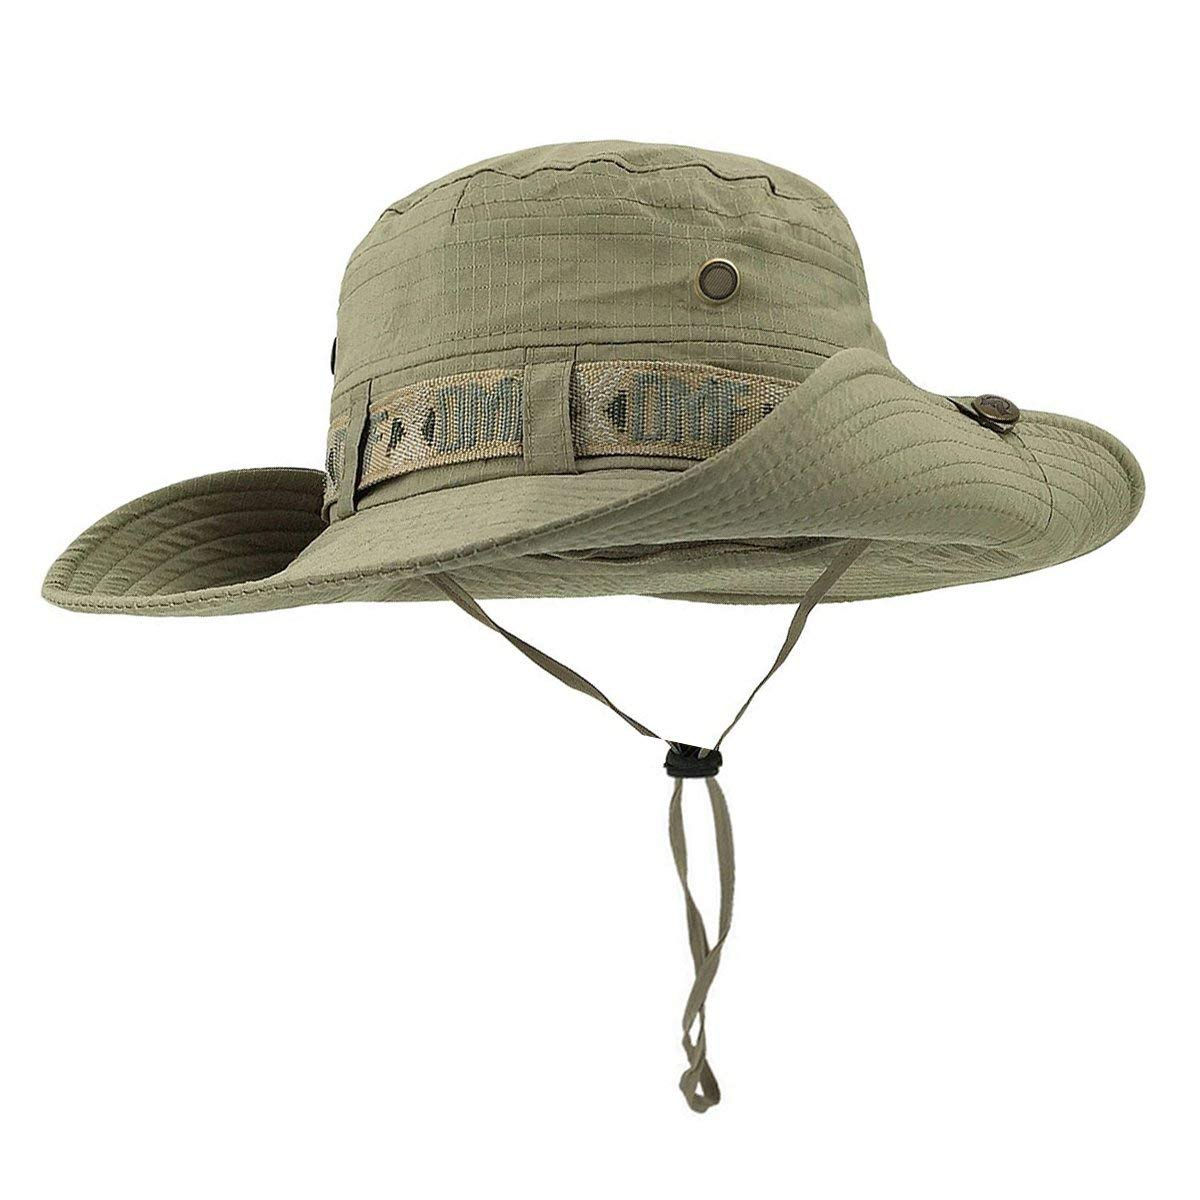 a49a968a Get Quotations · Fishing Hat Boonie Hat Summer Wide Brim Bucket Hat UV  Protection Safari Cap Outdoor Waterproof Hunting